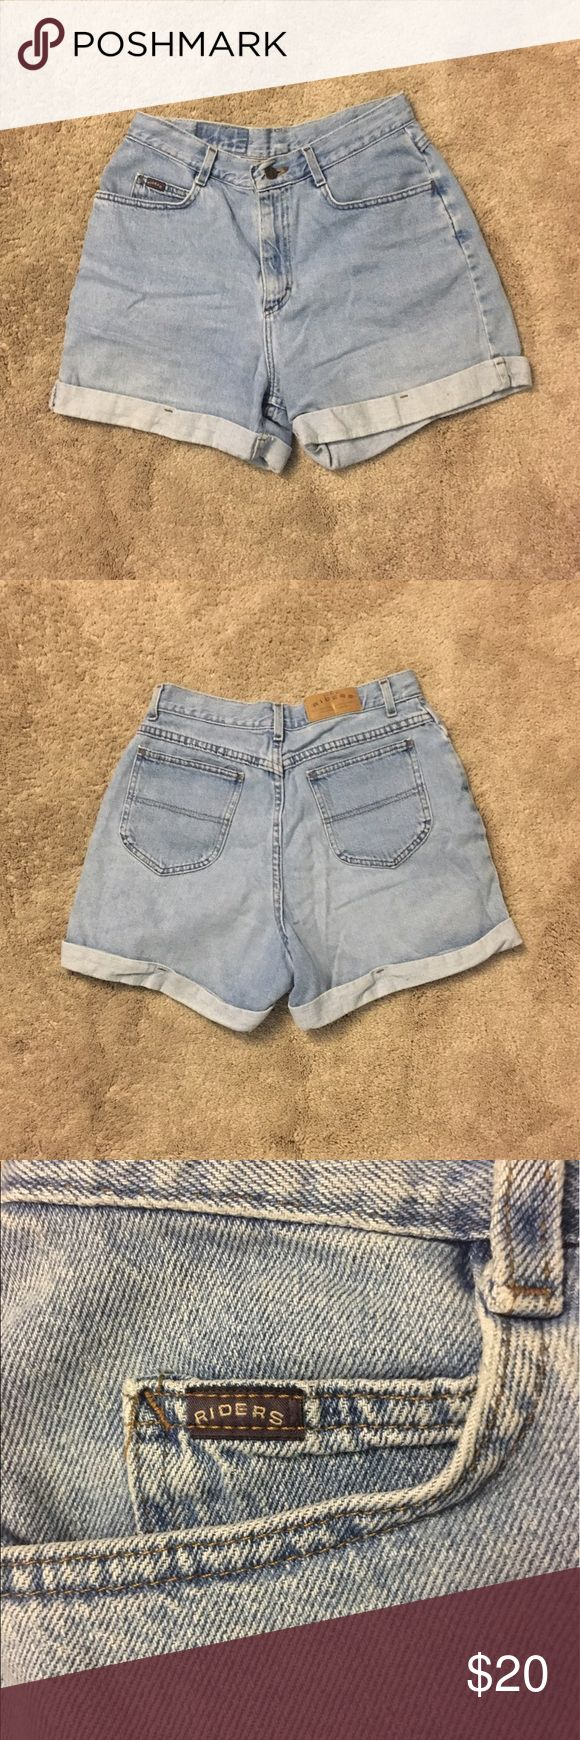 Vintage Levi's High Waisted Denim Shorts Vintage Levi's High Wasted Light Wash Denim Shorts, super flattering and comfortable, says 12 Medium on the tag. 15.5 inches across waist, 13 inch rise, 4.5 inch inseam. Levi's Shorts Jean Shorts